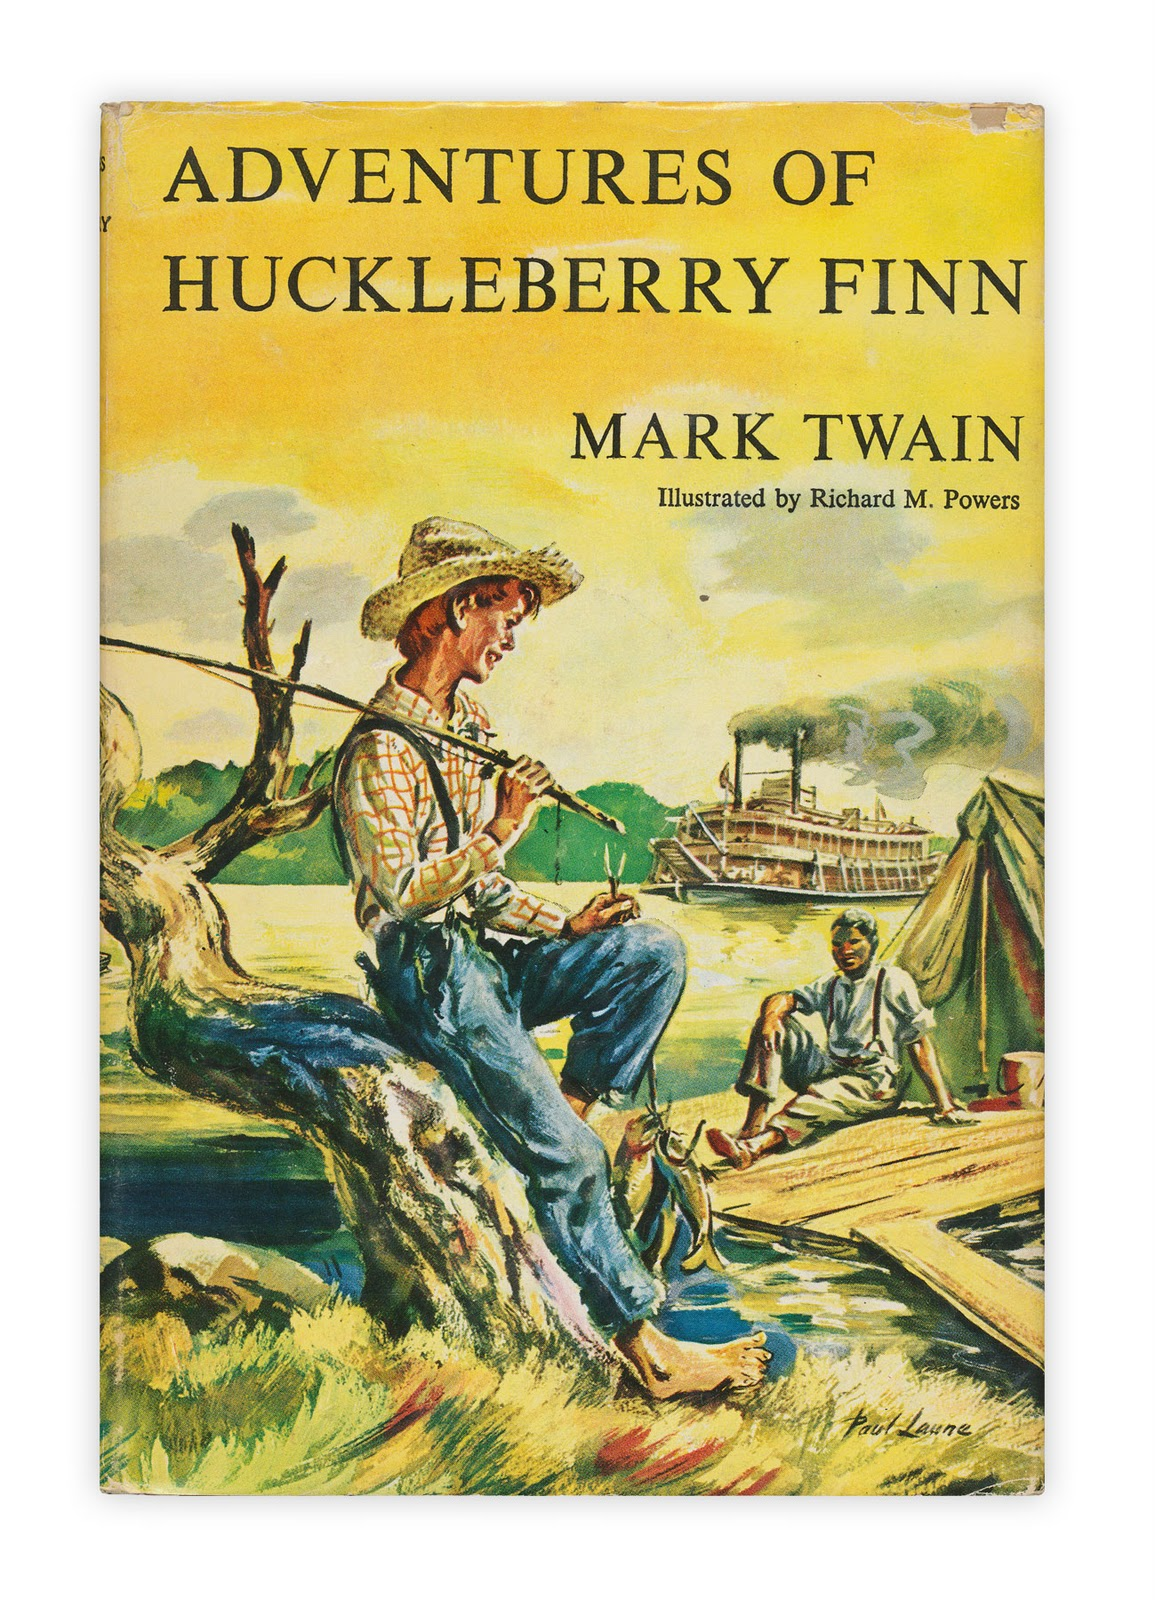 huckleberry finn the great controversy It was his return to the great river that enabled twain to return to huck: he knew  that  twain did not live to see adventures of huckleberry finn assume the   from the moment the book appeared—was the controversy into which it was born.